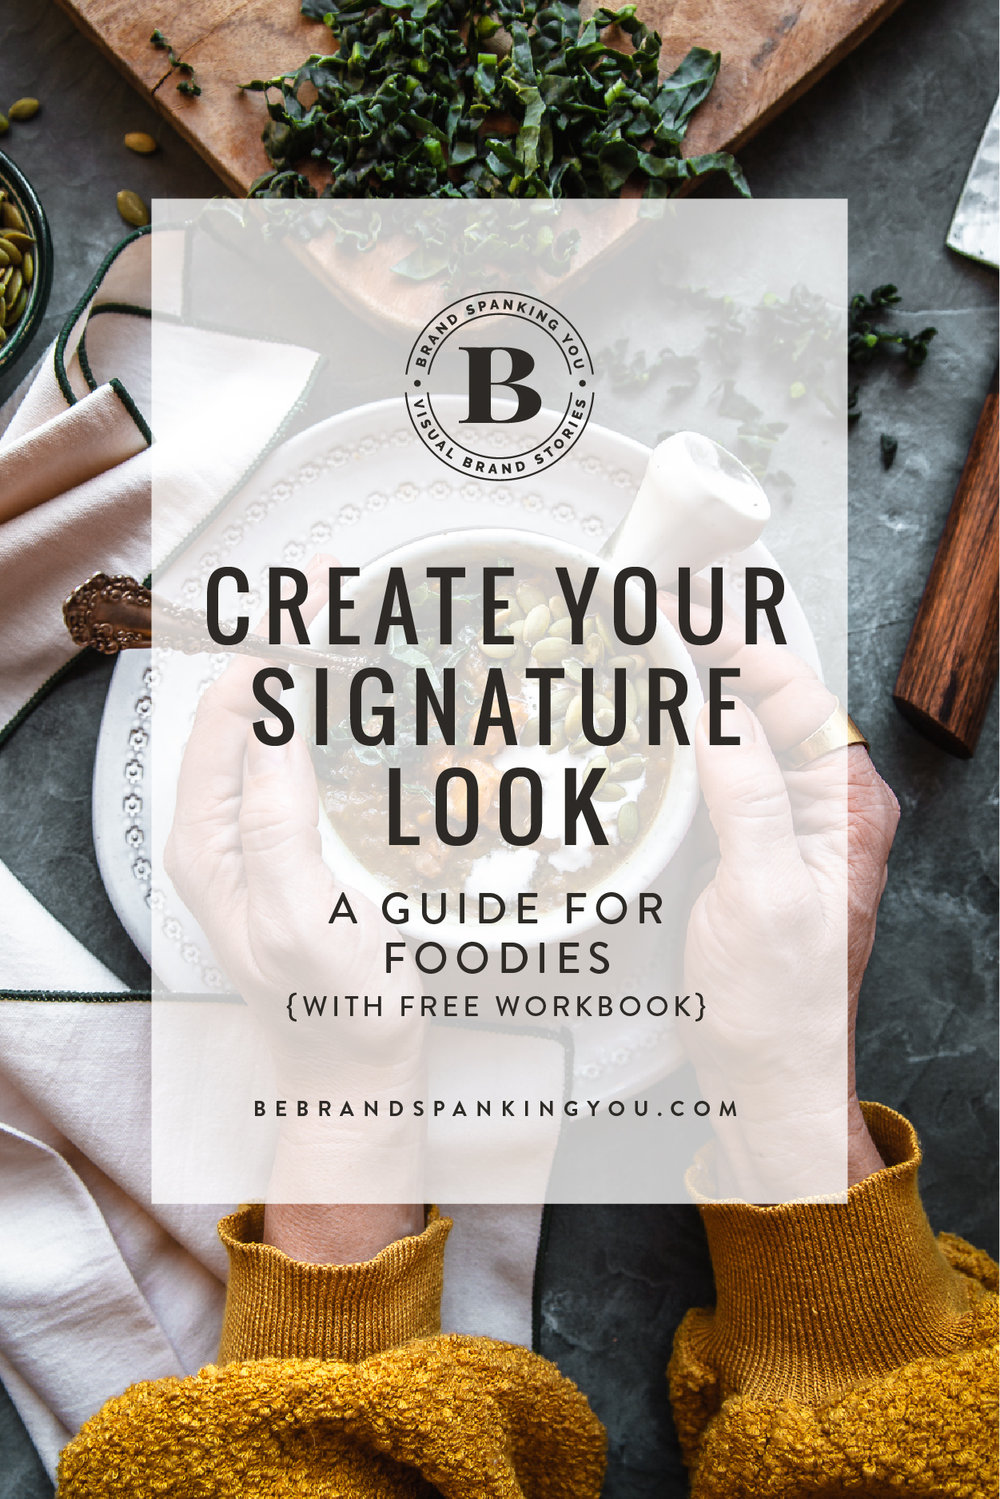 The easiest- and best way to brand your instagram feed is with color. But that can be tricky for food accounts. Learn a foolproof system for creating a signature, branded look for your images.